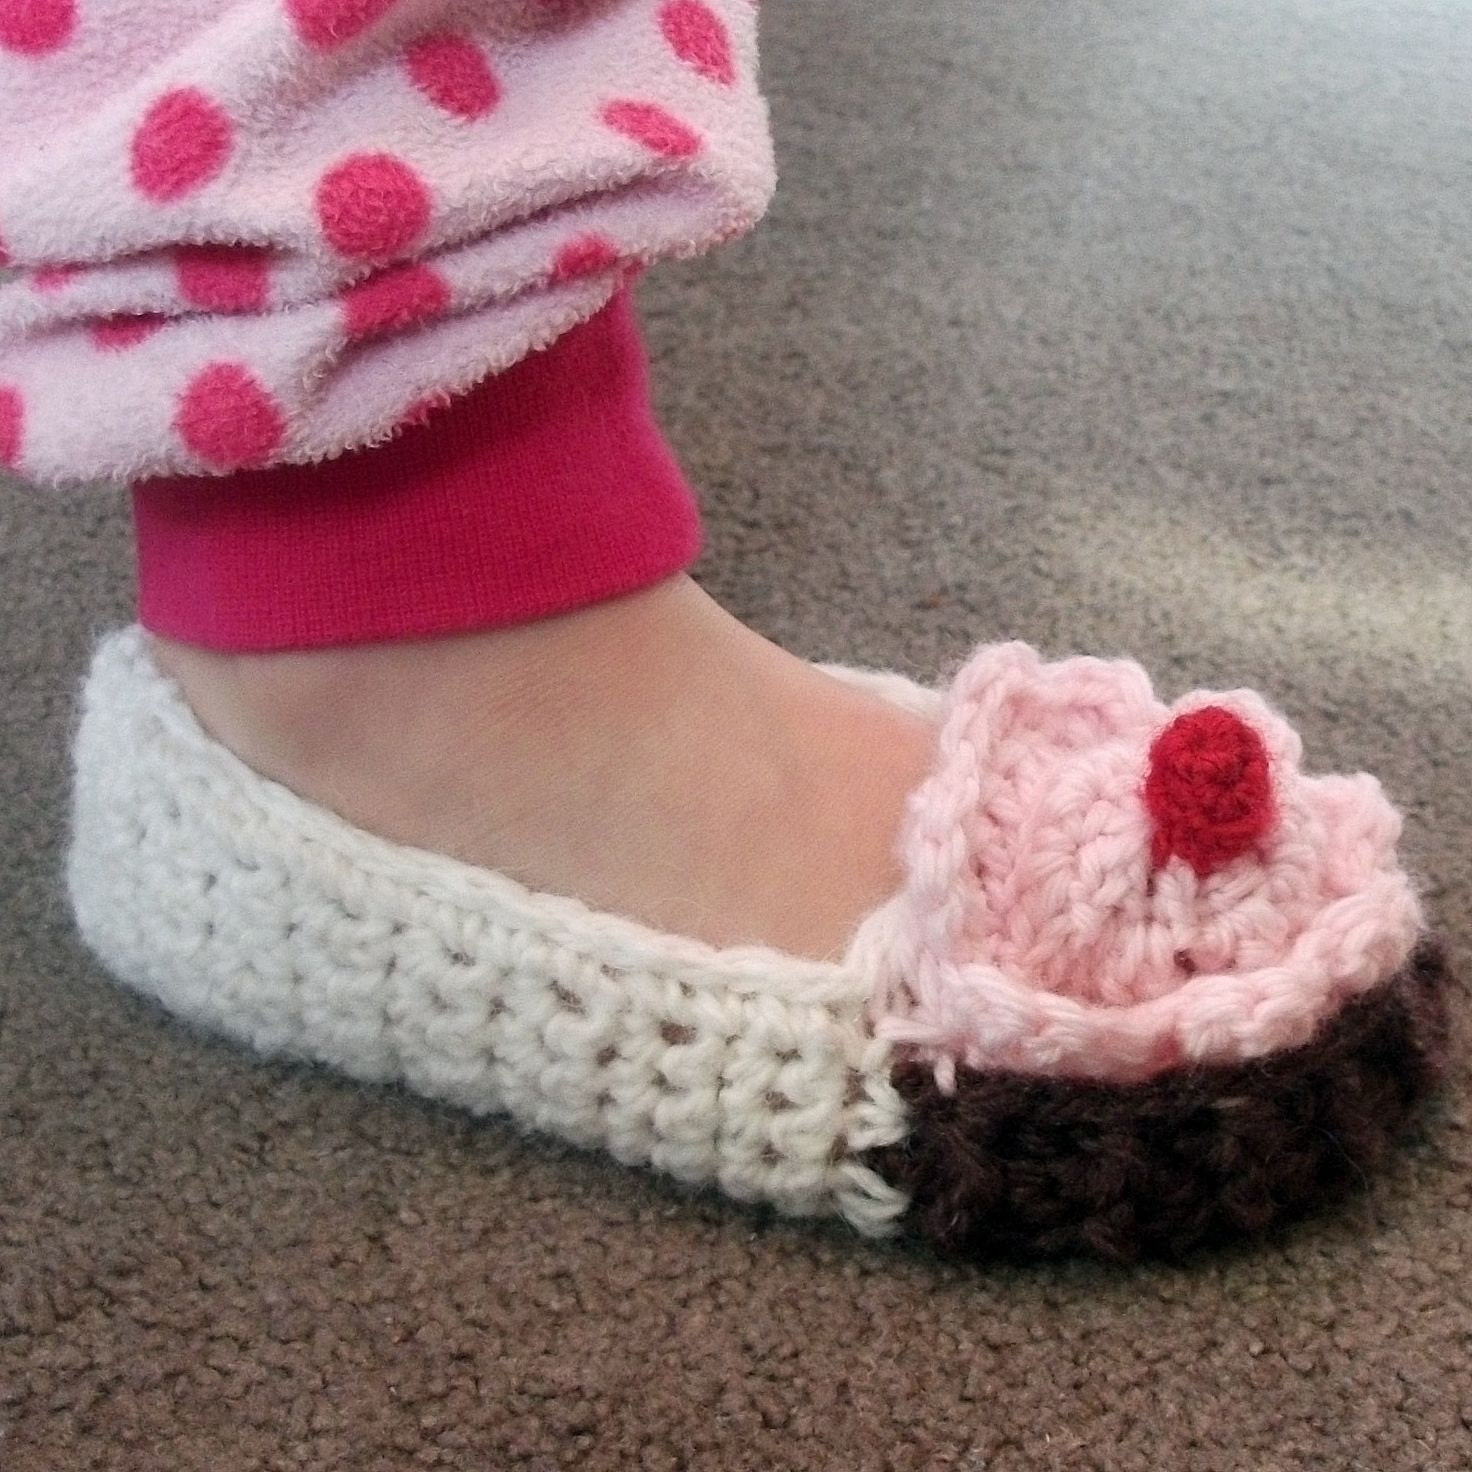 Crochet Patterns For Toddlers Slippers : CROCHET BABY SLIPPERS PATTERN ? Crochet For Beginners